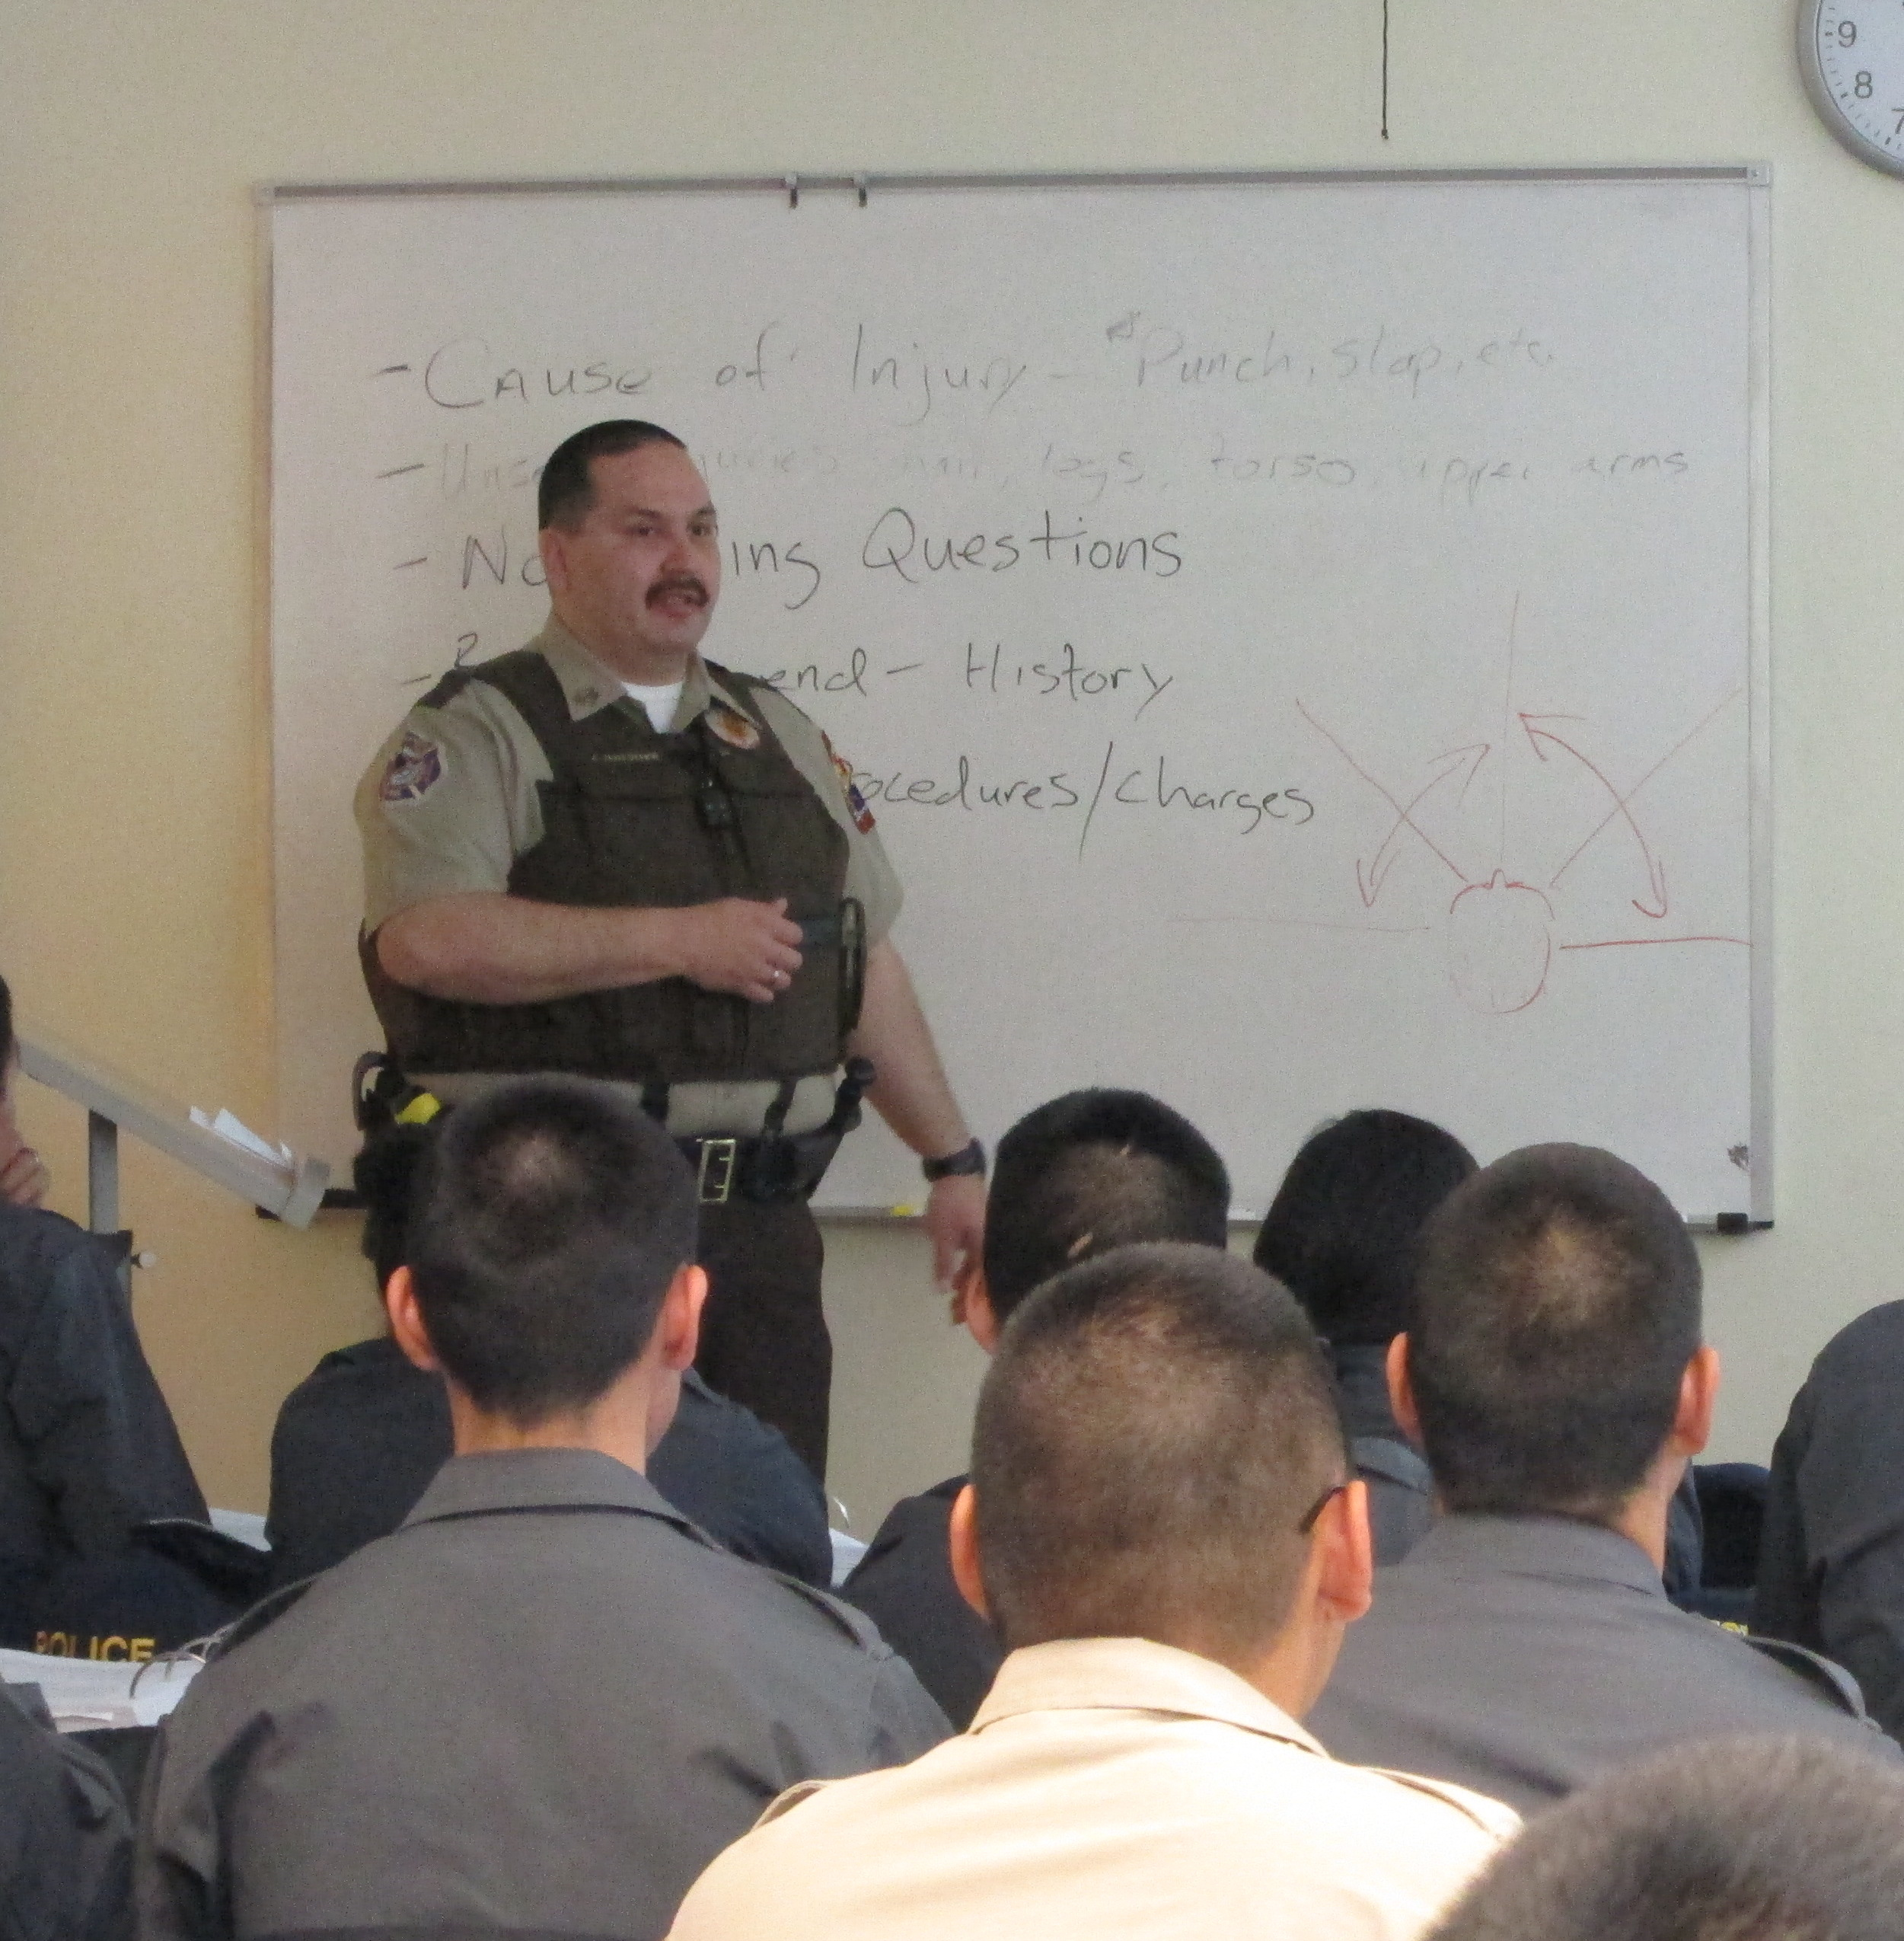 First Sergeant James Hoelscher instructs officers at a 2014 training. Photo by Ben Matheson / KYUK.